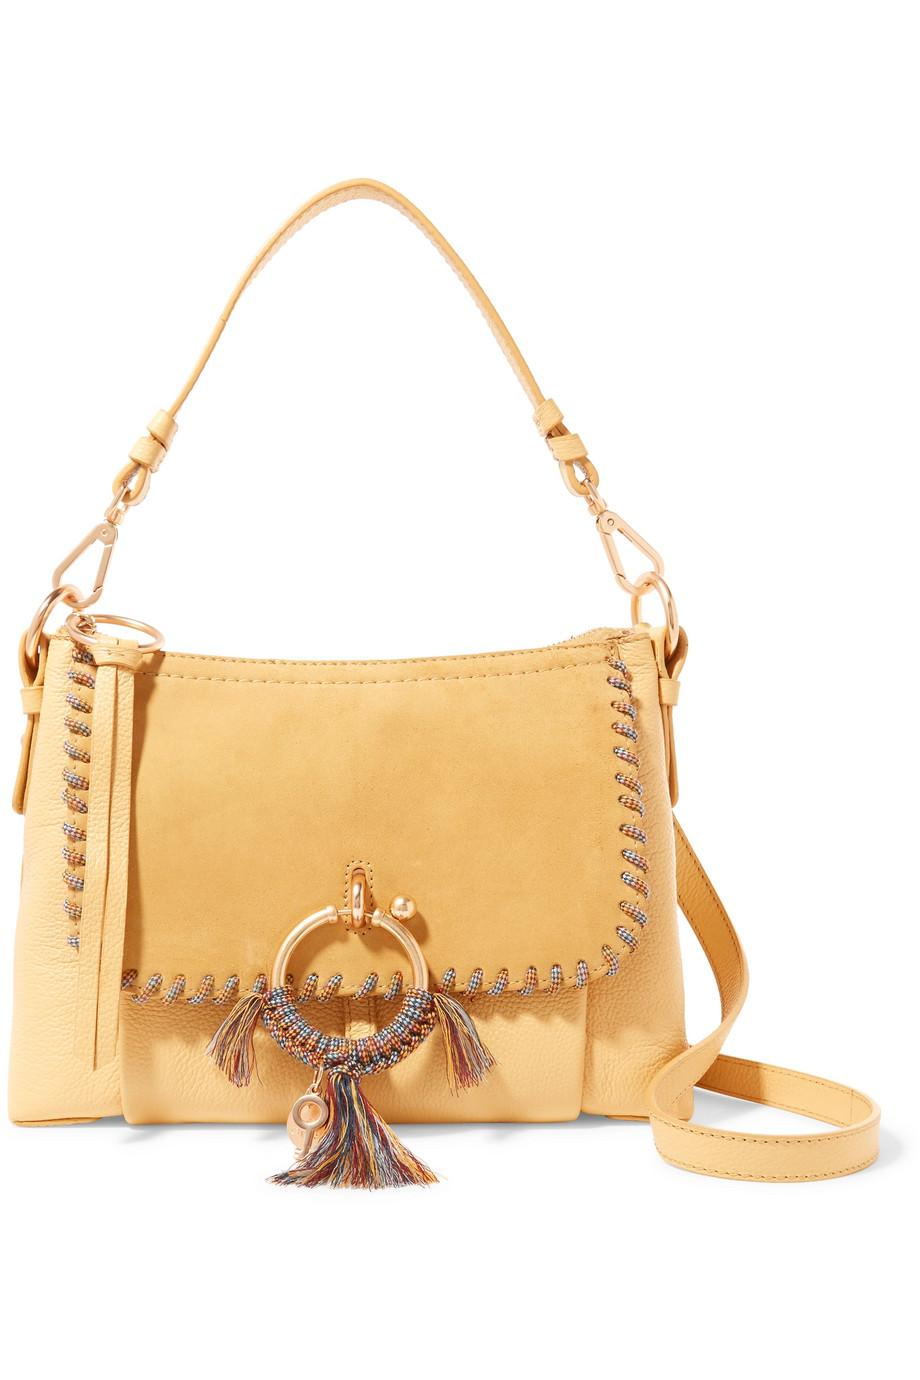 Joan Small Whipstitched Suede-paneled Textured-leather Shoulder Bag - Yellow See By Chlo UTHQT4Dyh